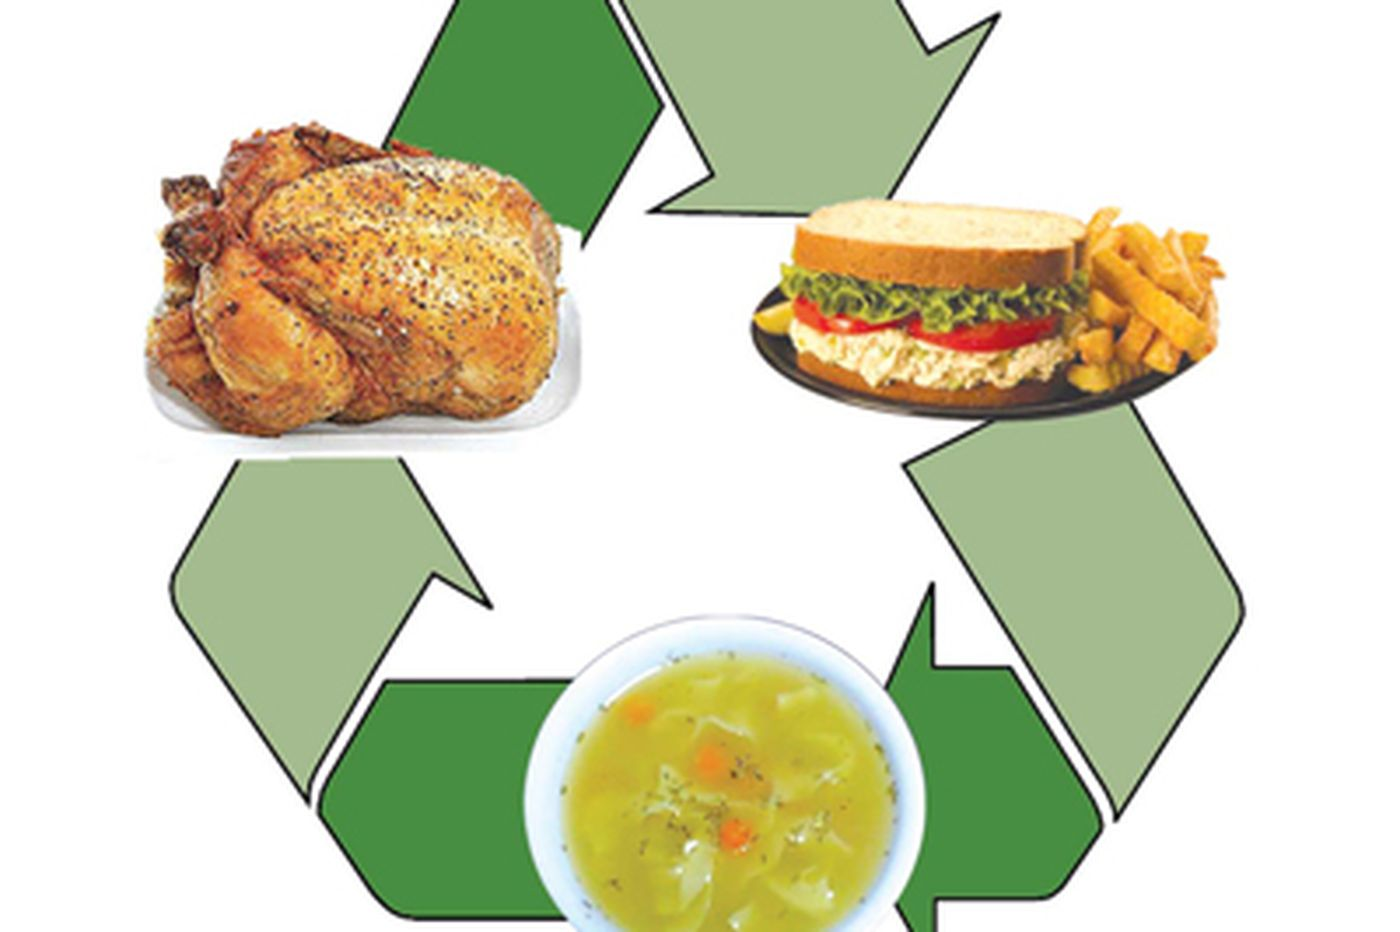 GreenSpace: Disposing of the food-waste problem